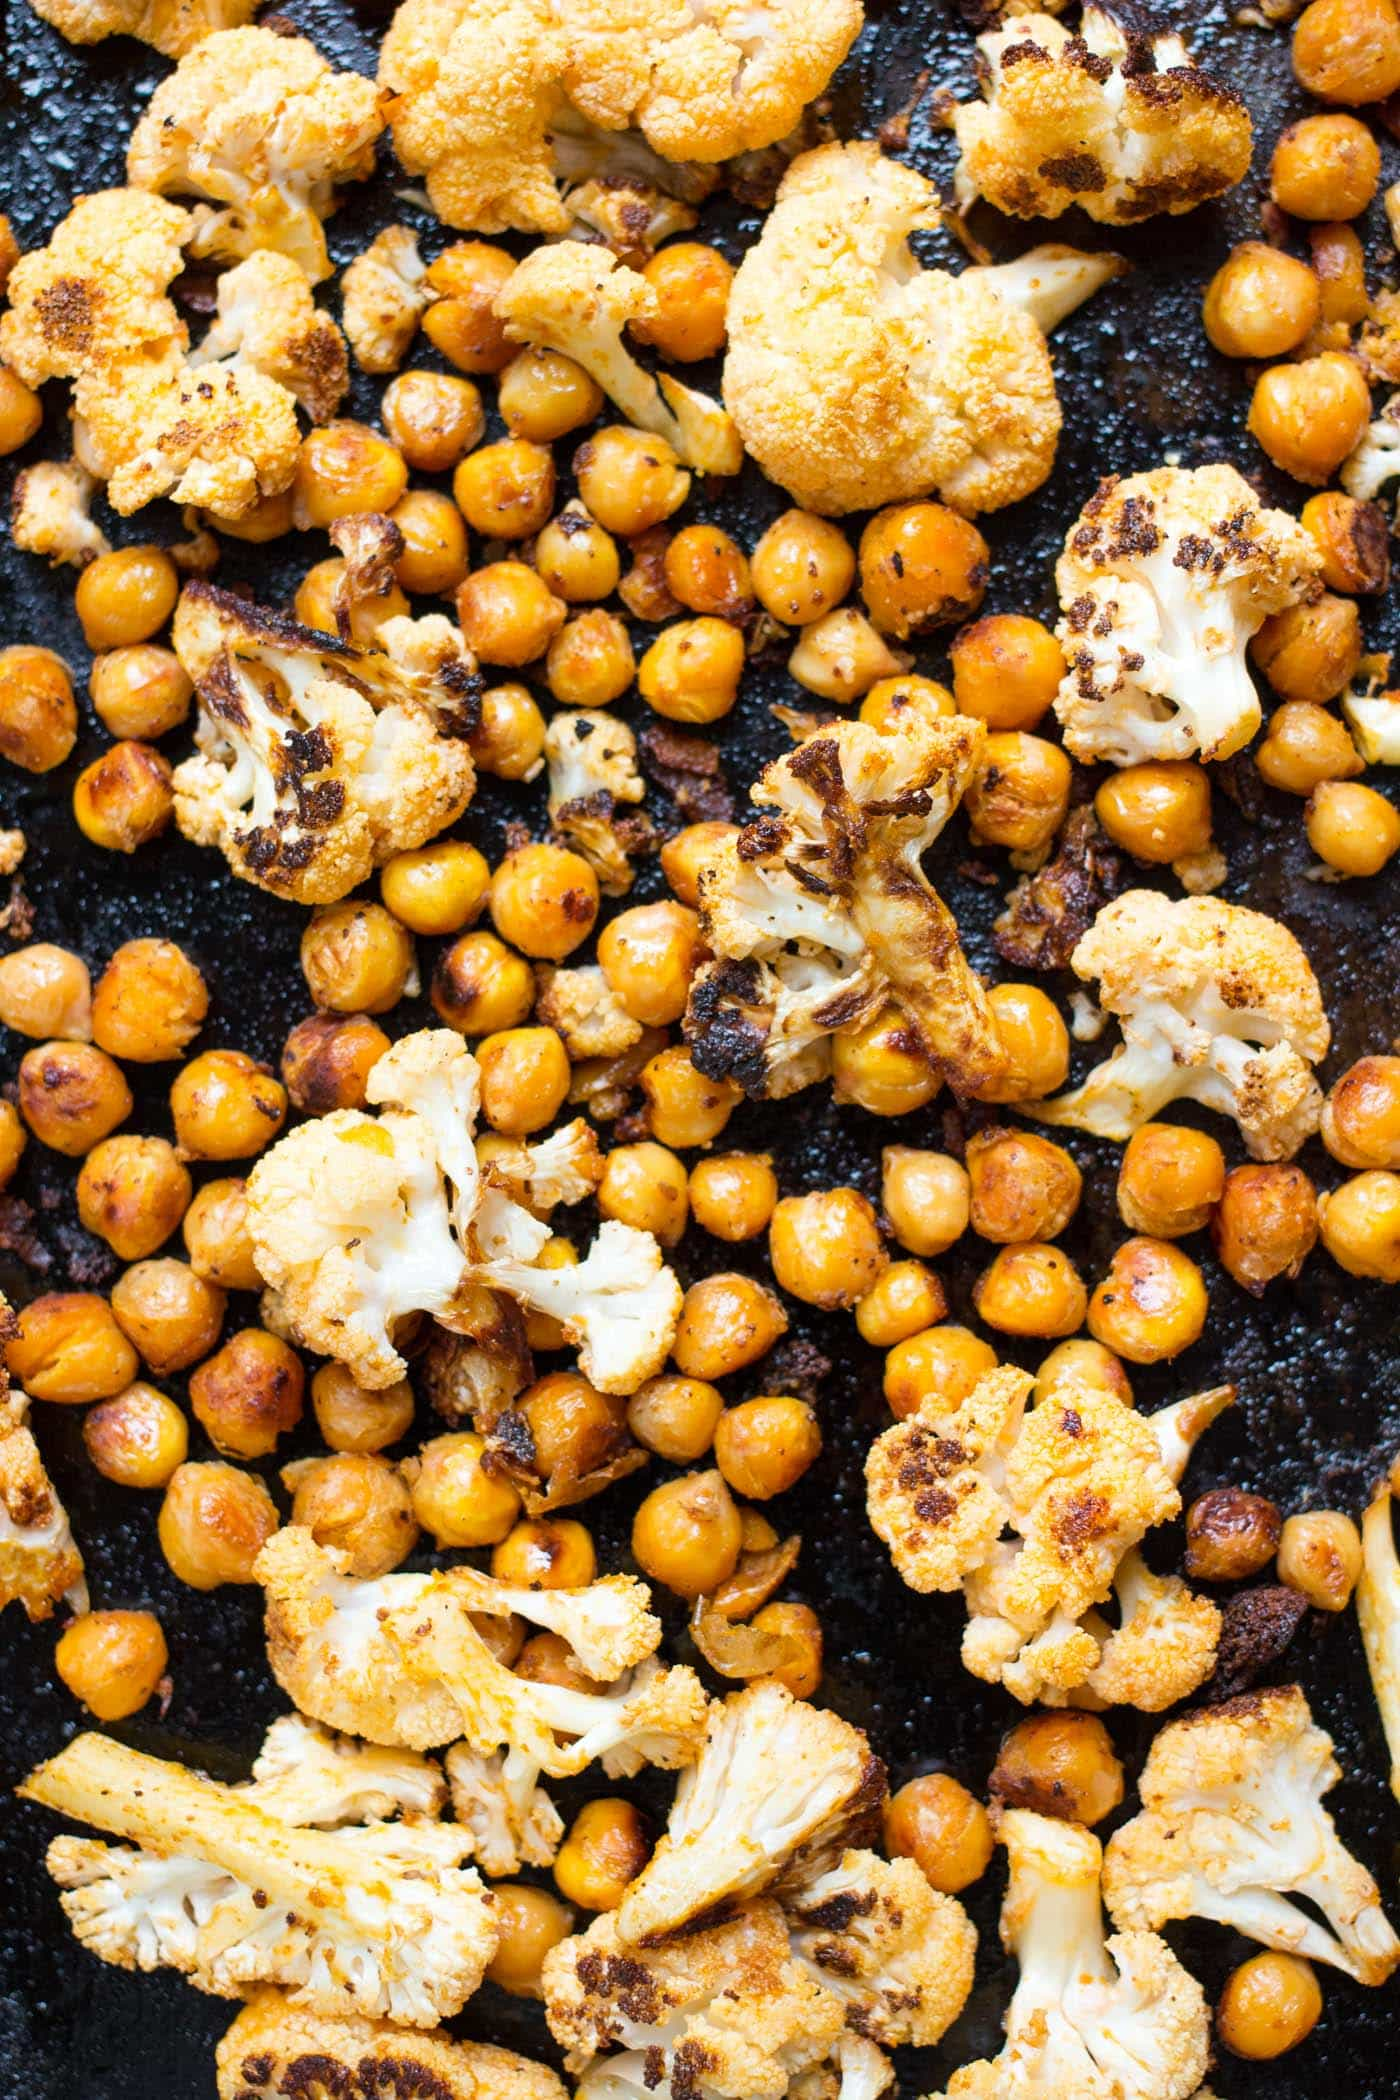 This roasted Buffalo Cauliflower + Chickpea mixture makes the most AMAZING vegan taco filling ever!